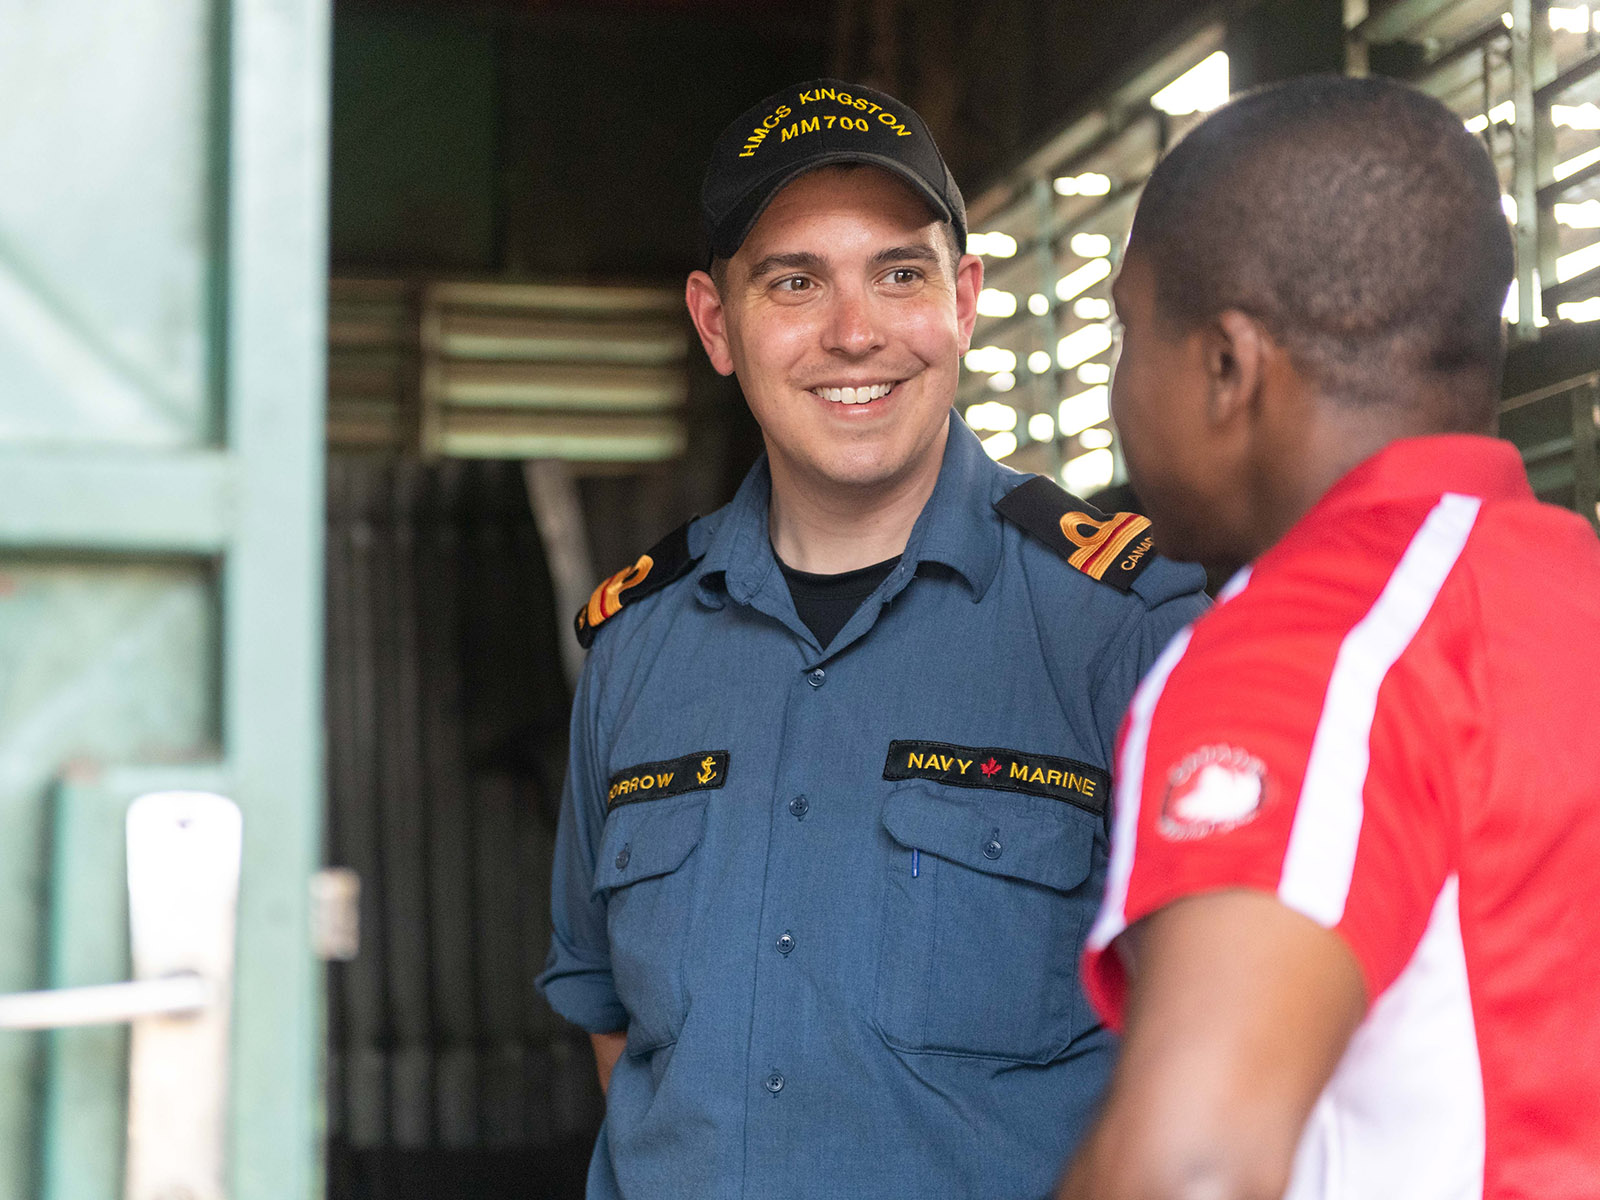 Lt(N) Greg Morrow chats with Canada's Ambassador to Benin, Edmond Wega, at Foyer Don Bosco school in Cotonou, Benin after providing first aid training during Operation PROJECTION West Africa on March 1, 2019.